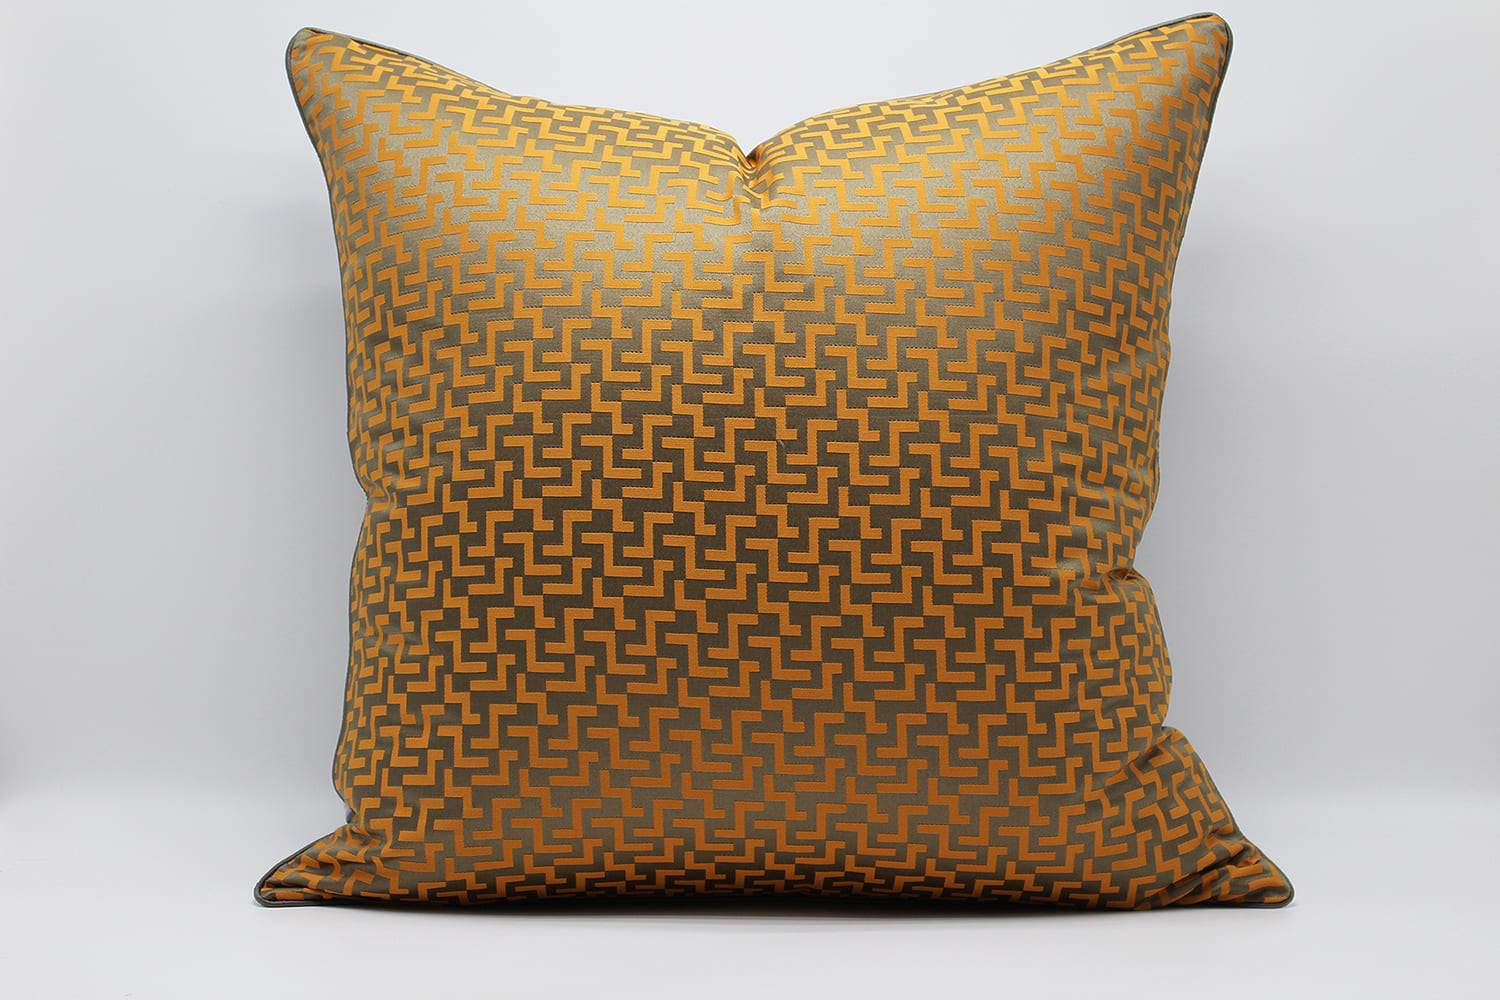 GUCCI BEST GOLDEN PILLOWS & CUSHION- ANGIE HOMES ANGIE HOMES